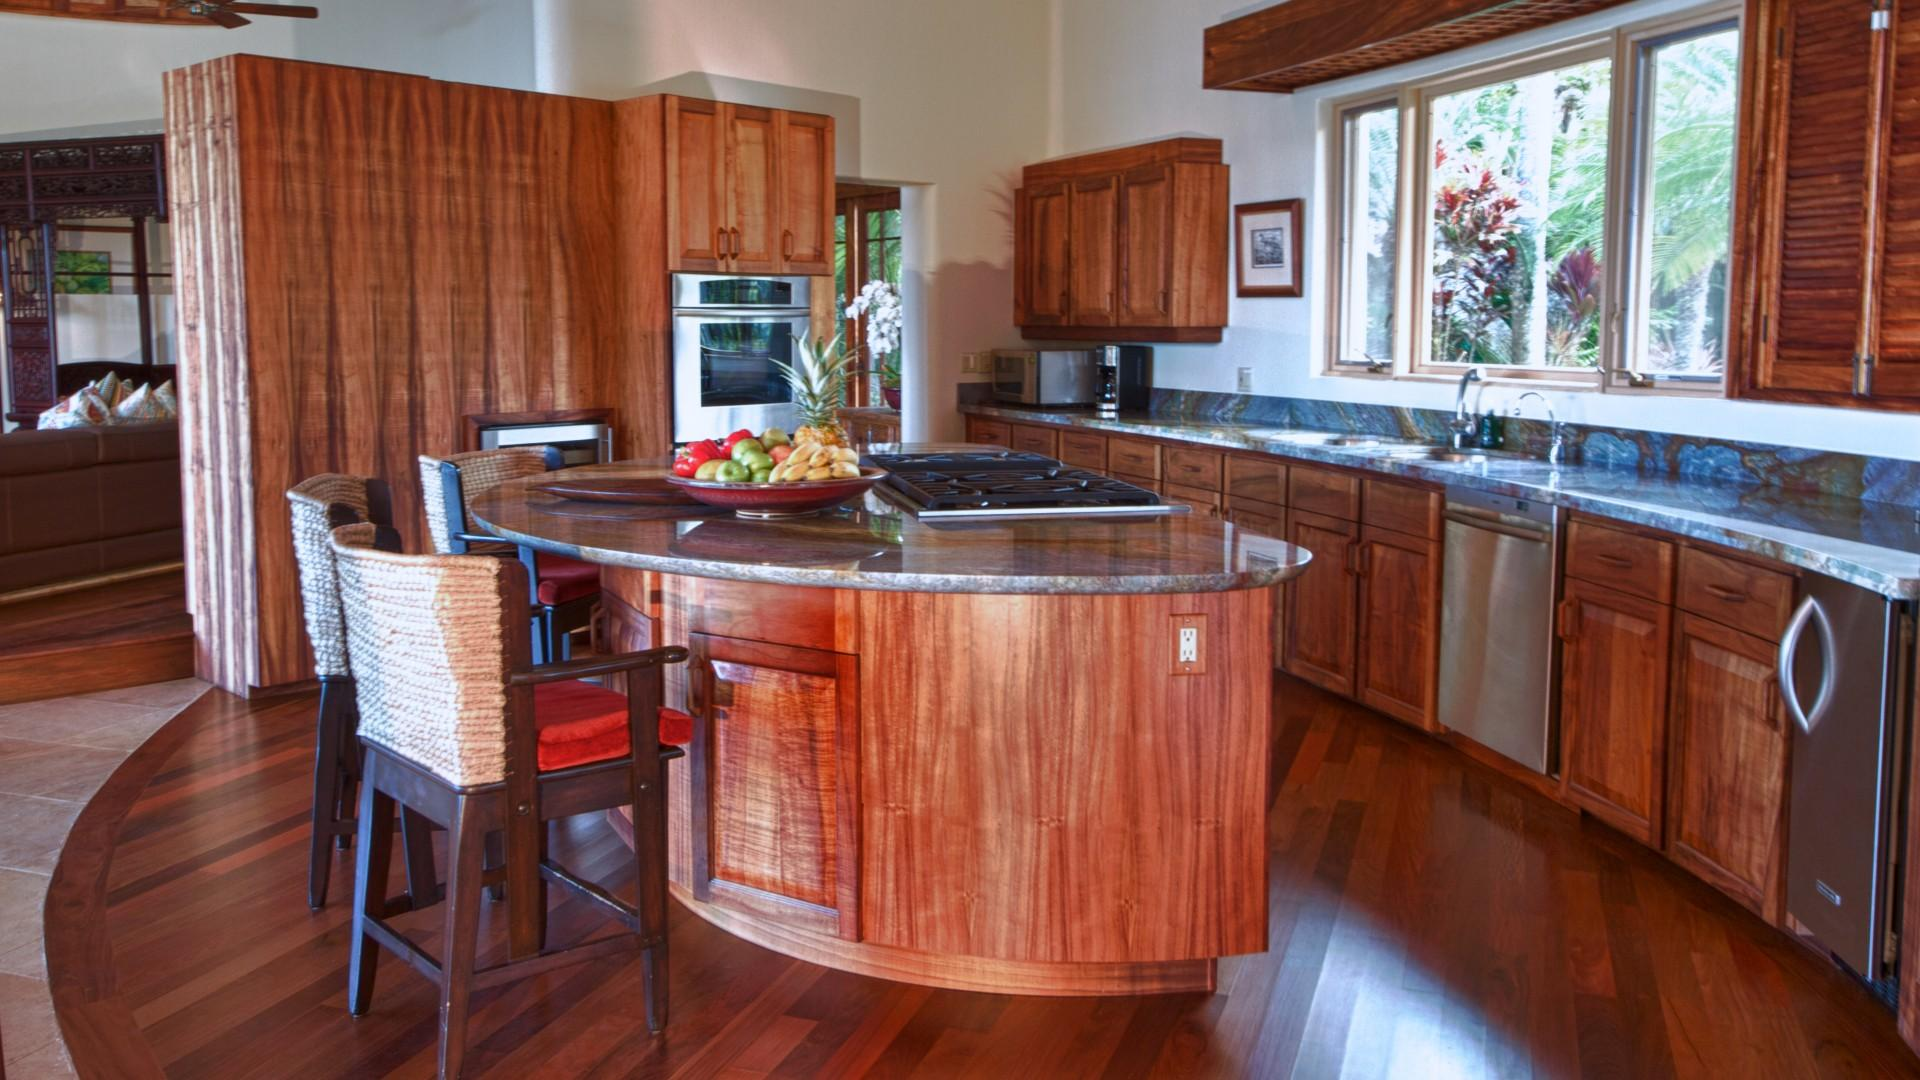 Kitchen in Main House featuring solid Koa wood cabinetry